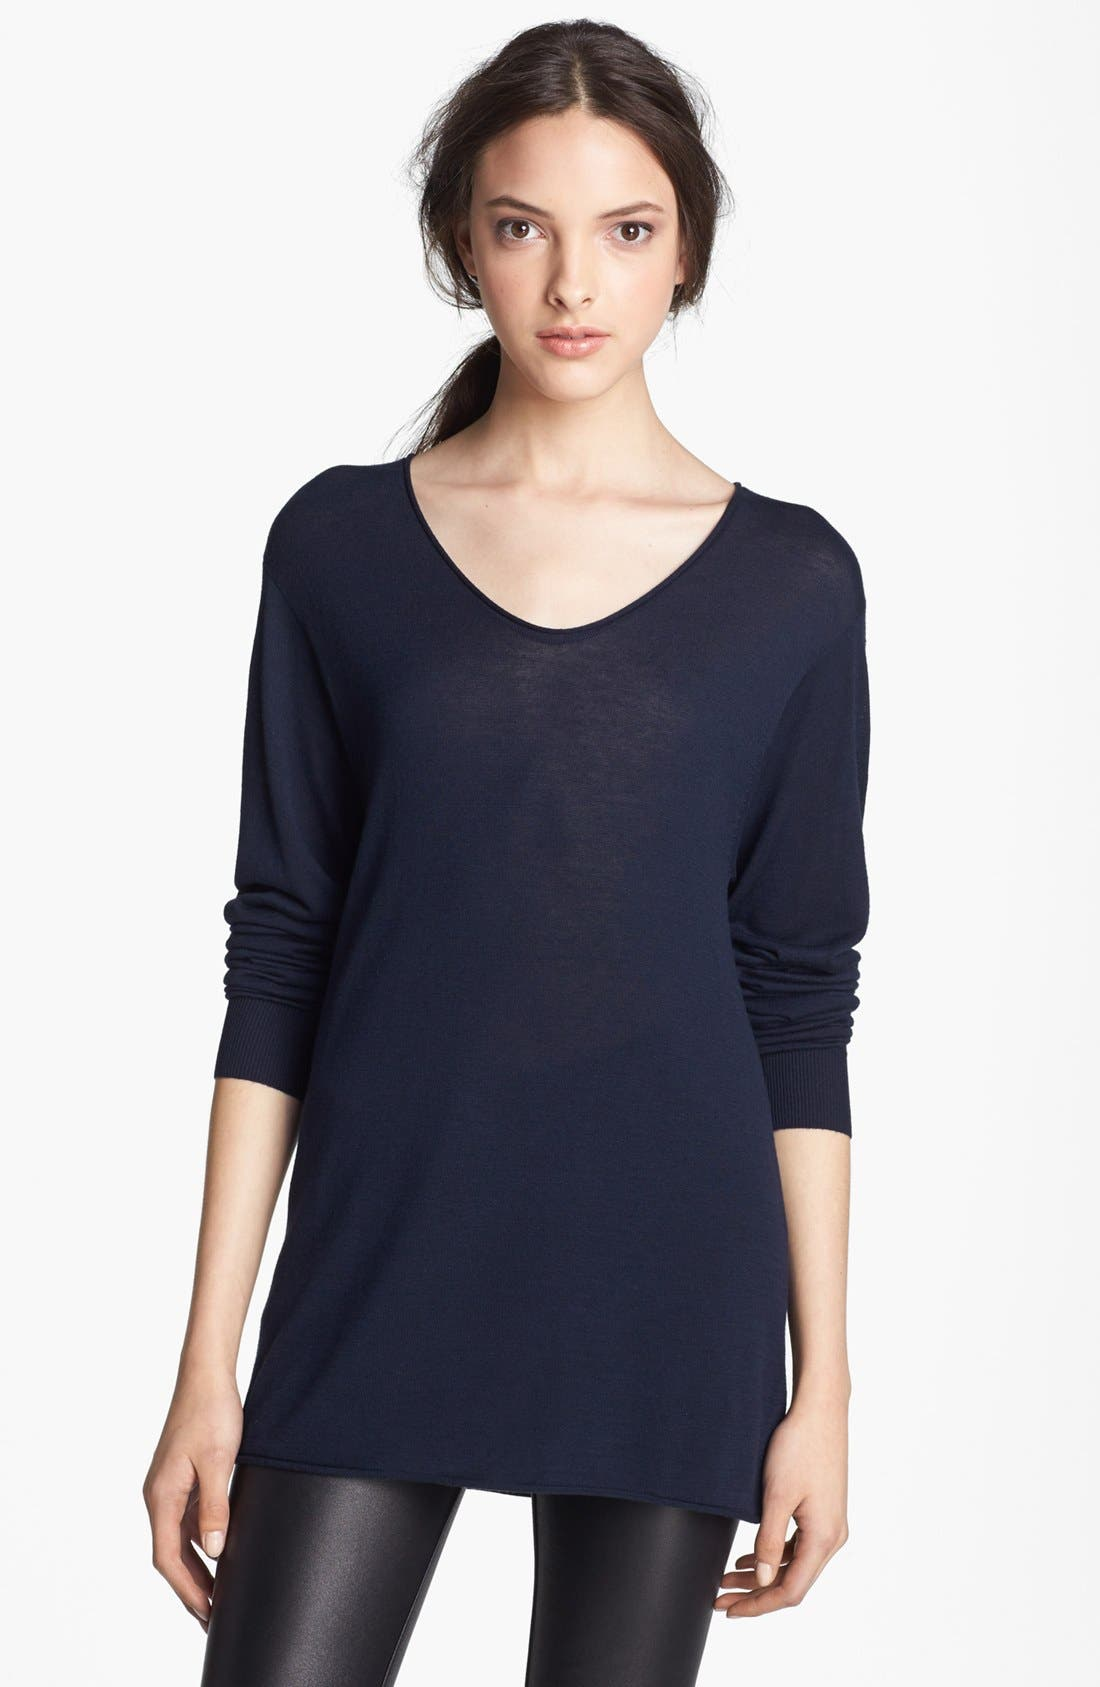 Main Image - T by Alexander Wang Fitted Jersey Tee